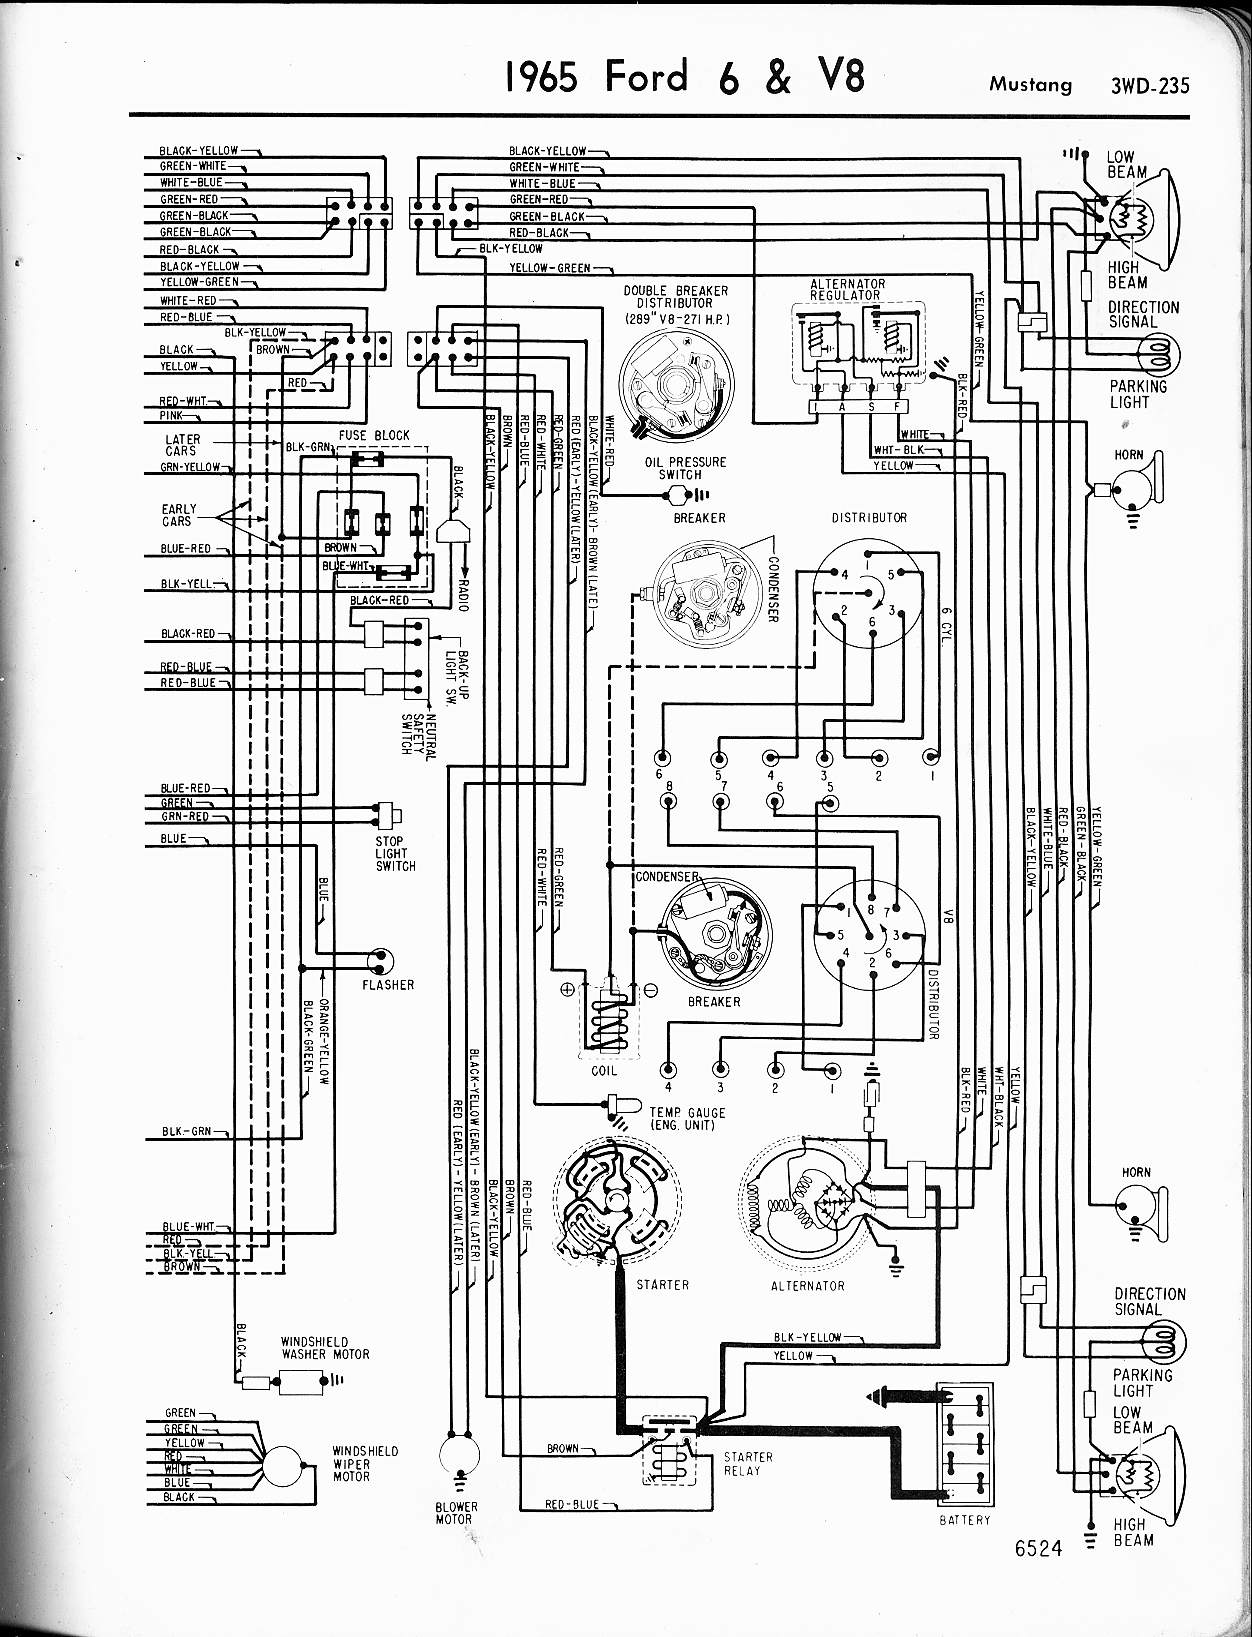 57 65 ford wiring diagrams rh oldcarmanualproject com 65 ford f100 wiring diagram 65 ford f100 wiring diagram